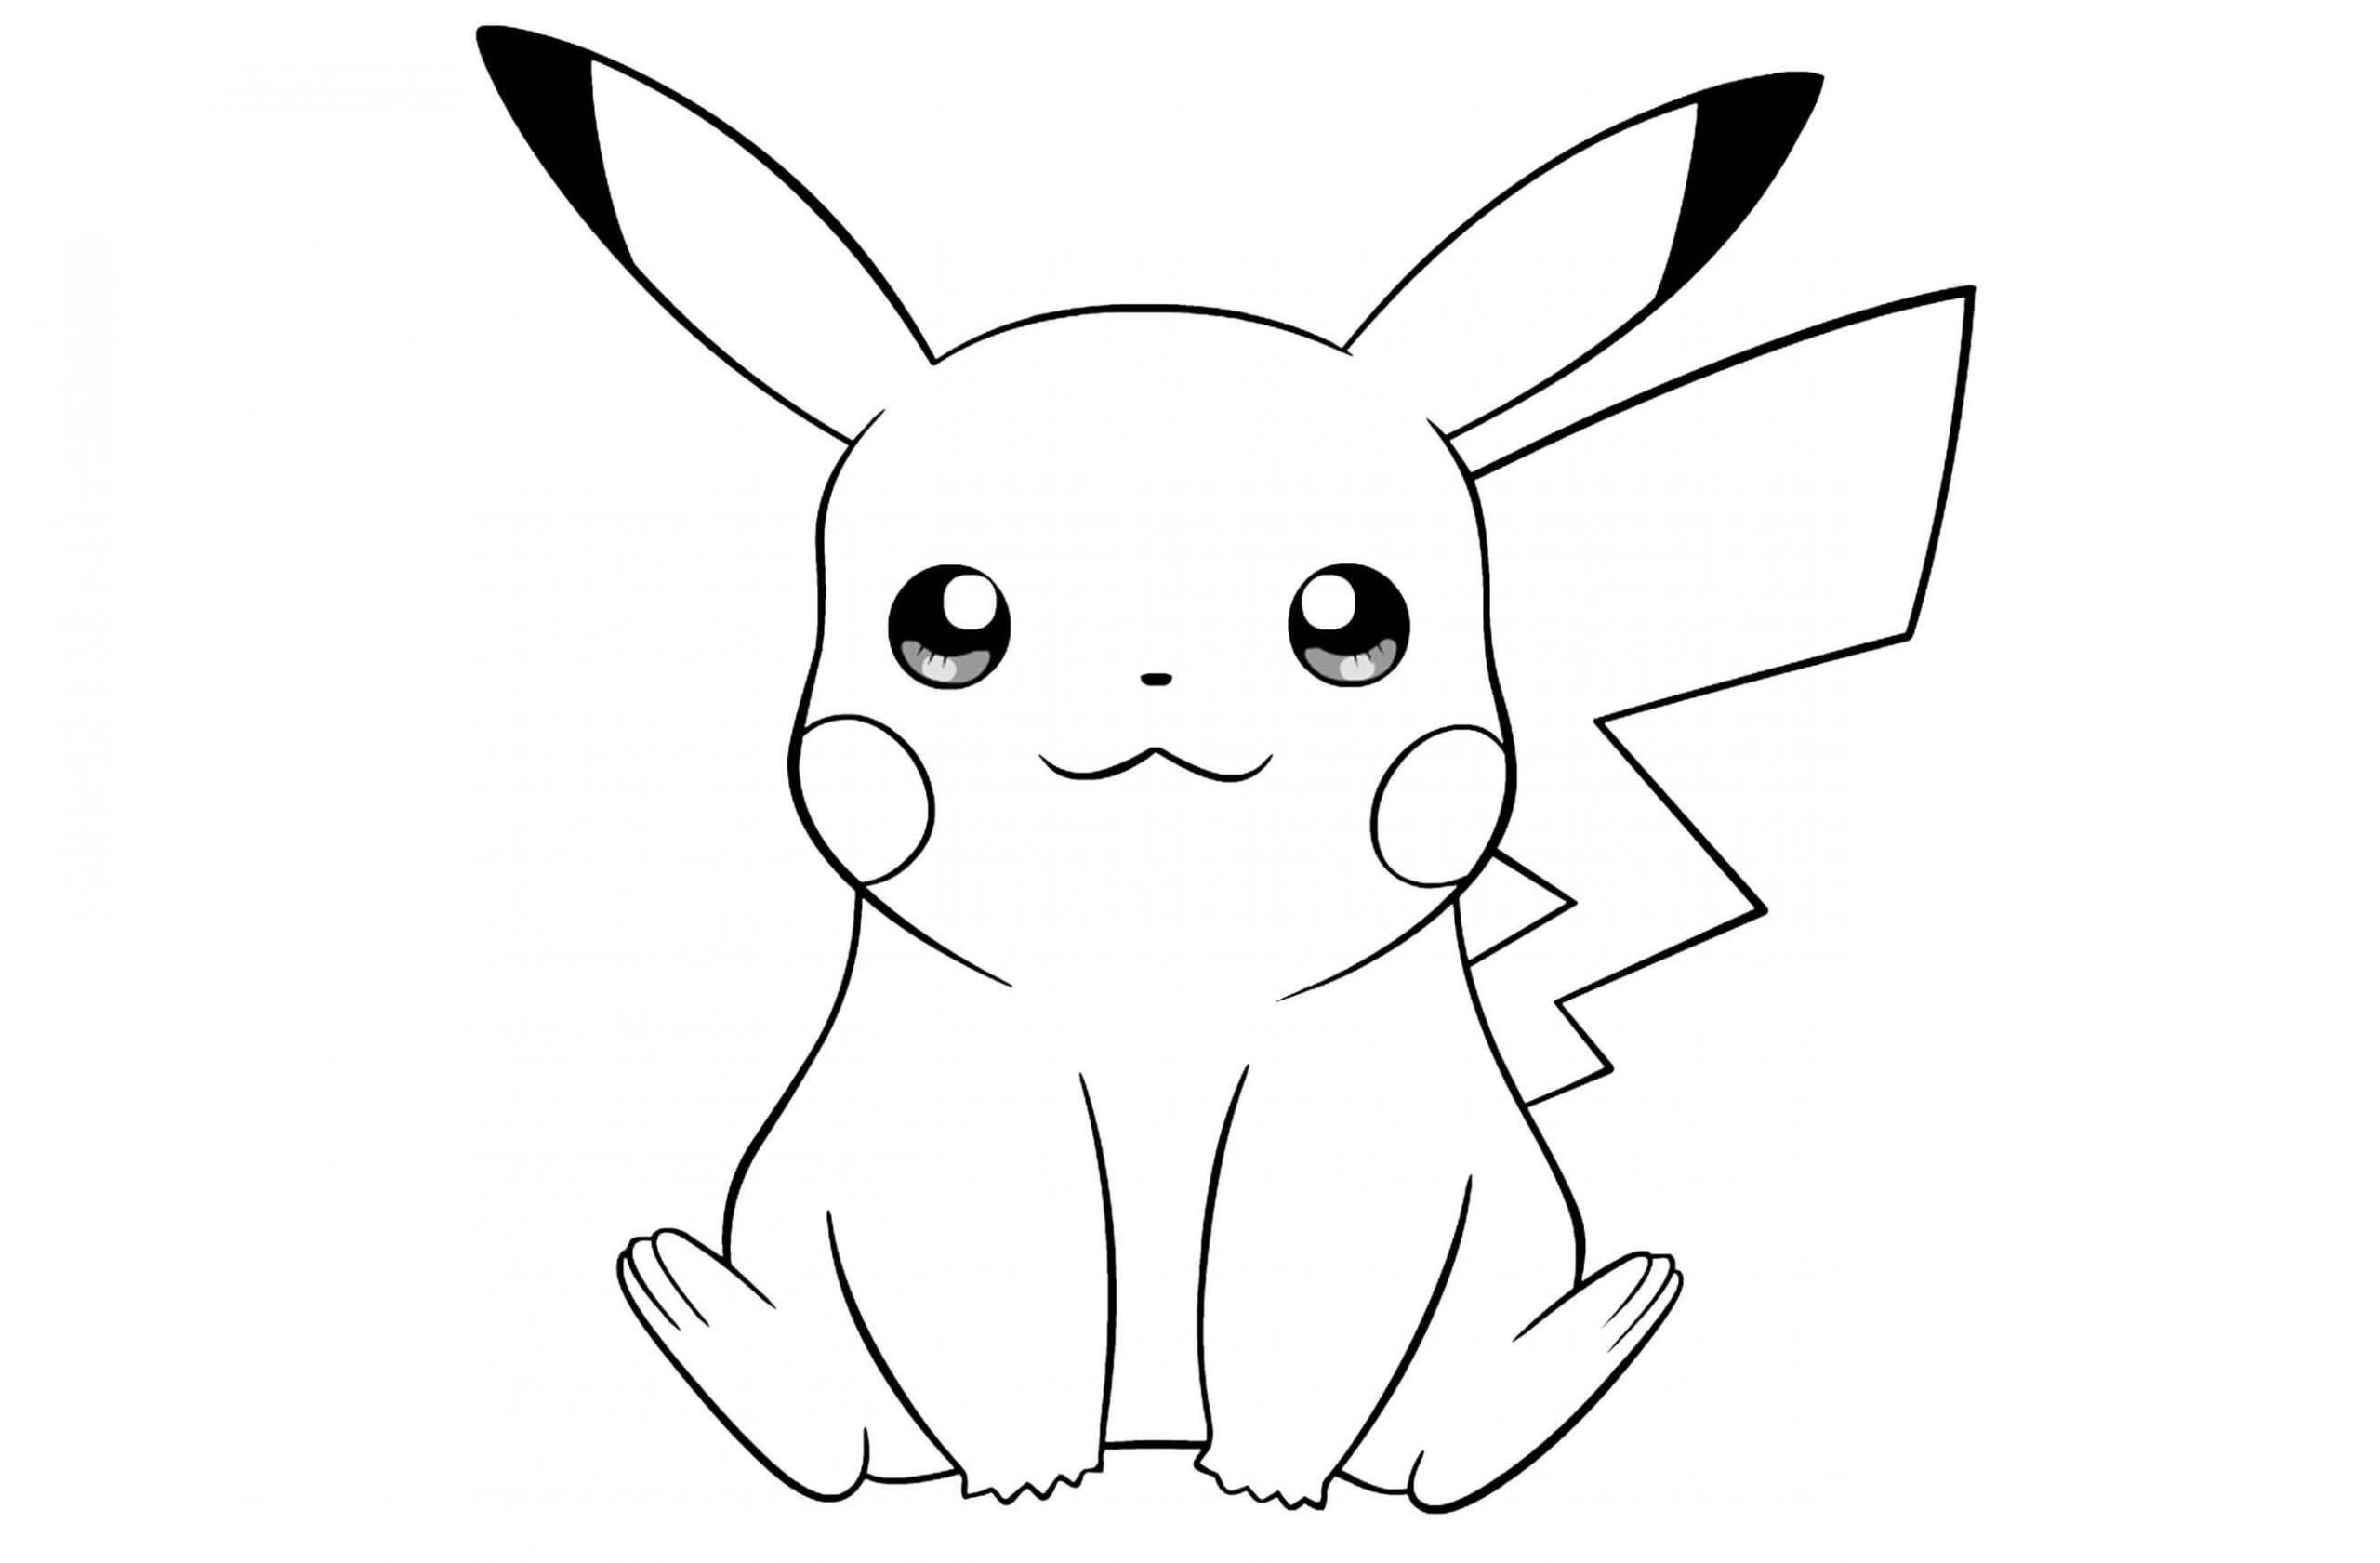 pikachu cute pokemon coloring pages easy pokemon coloring pages pikachu cute to print for cute pages pokemon coloring pikachu